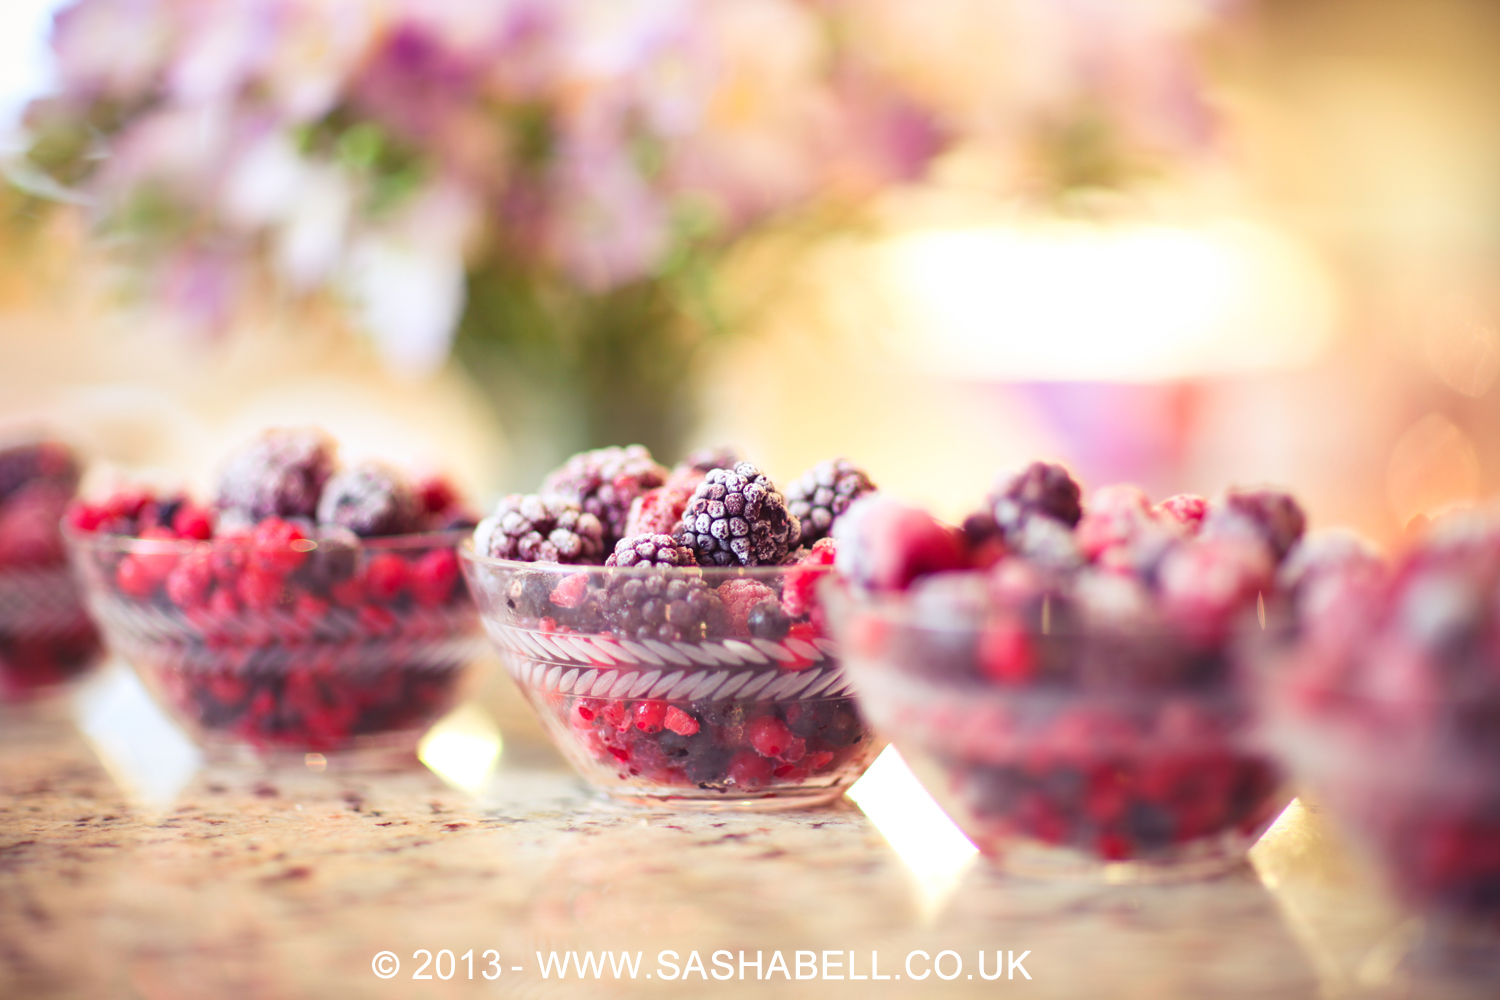 Summer Fruits – Day 138/365